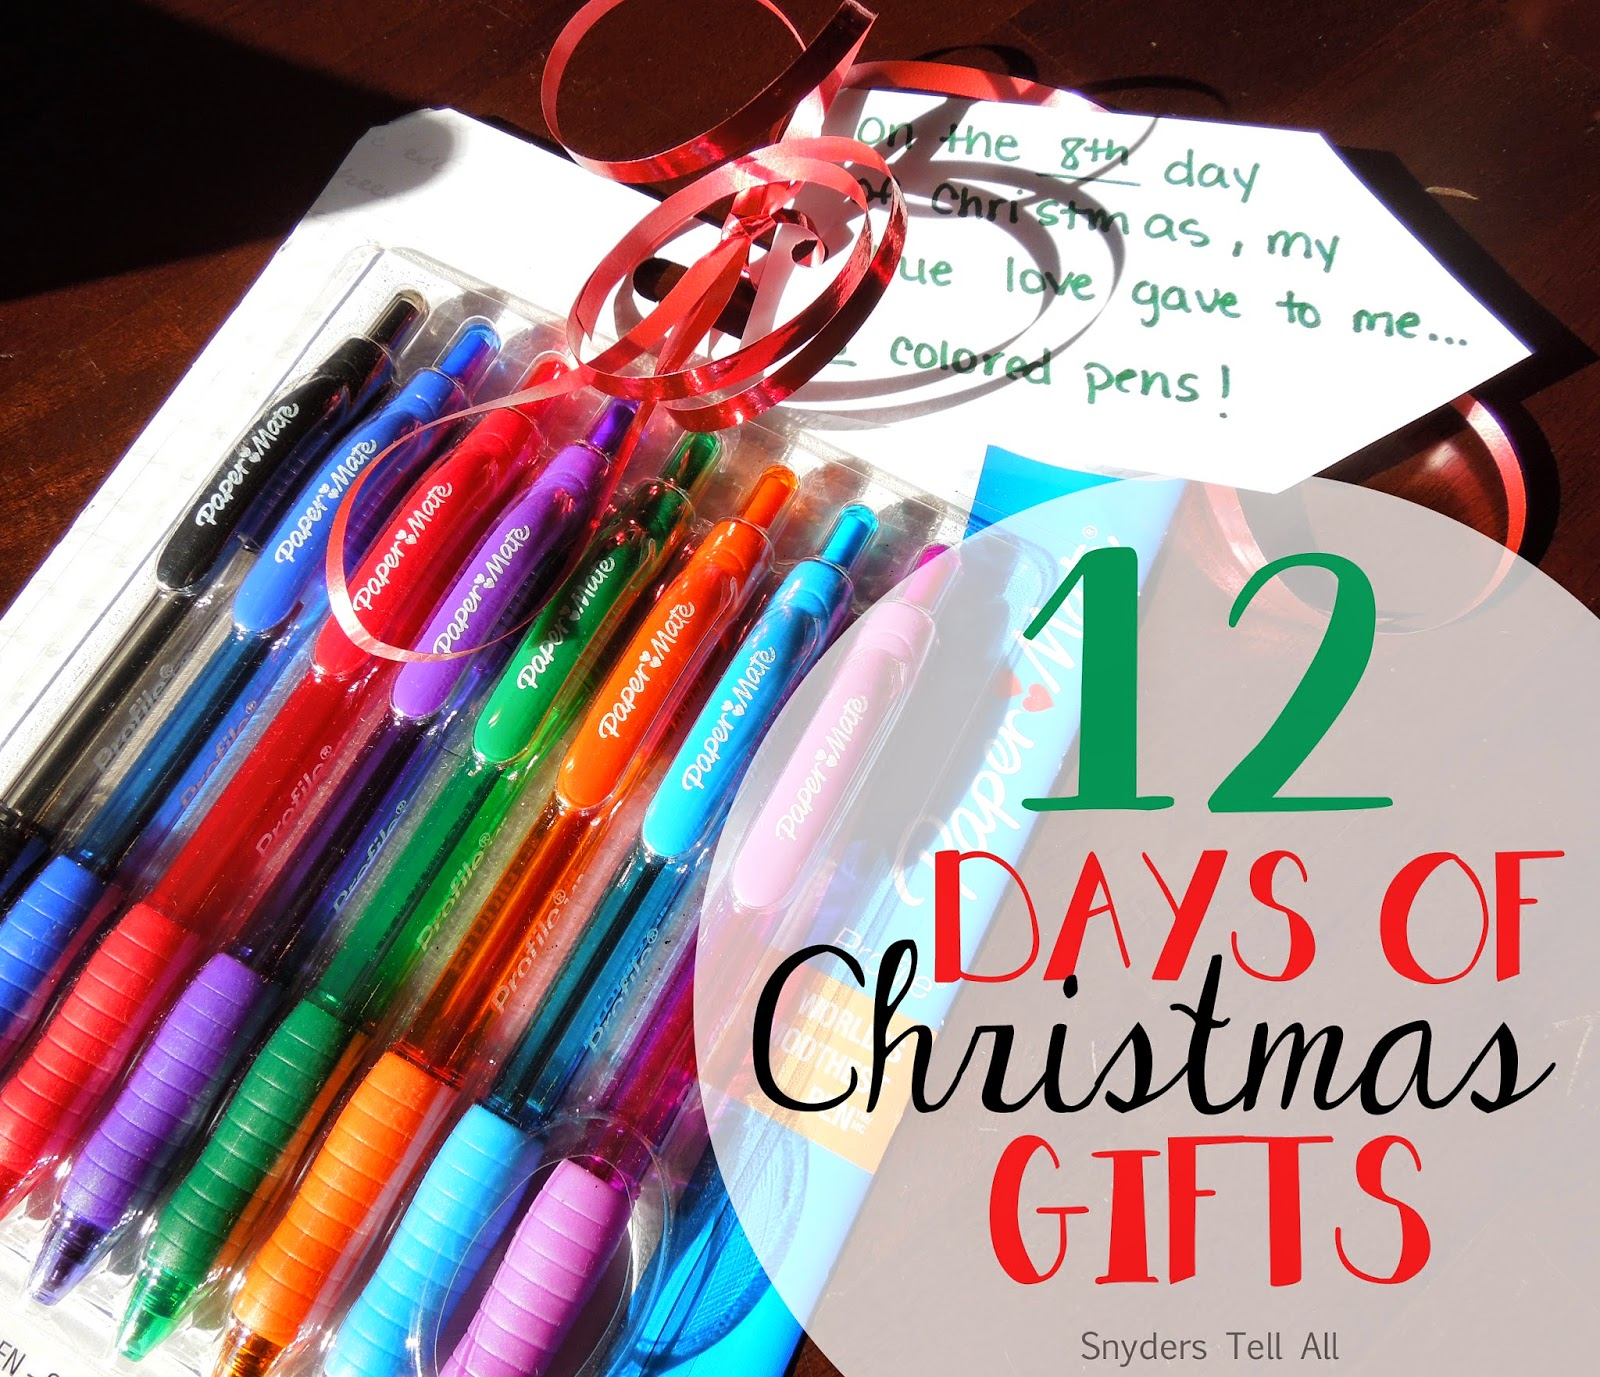 12 days of christmas gifts joyfully prudent - How Many Gifts In 12 Days Of Christmas